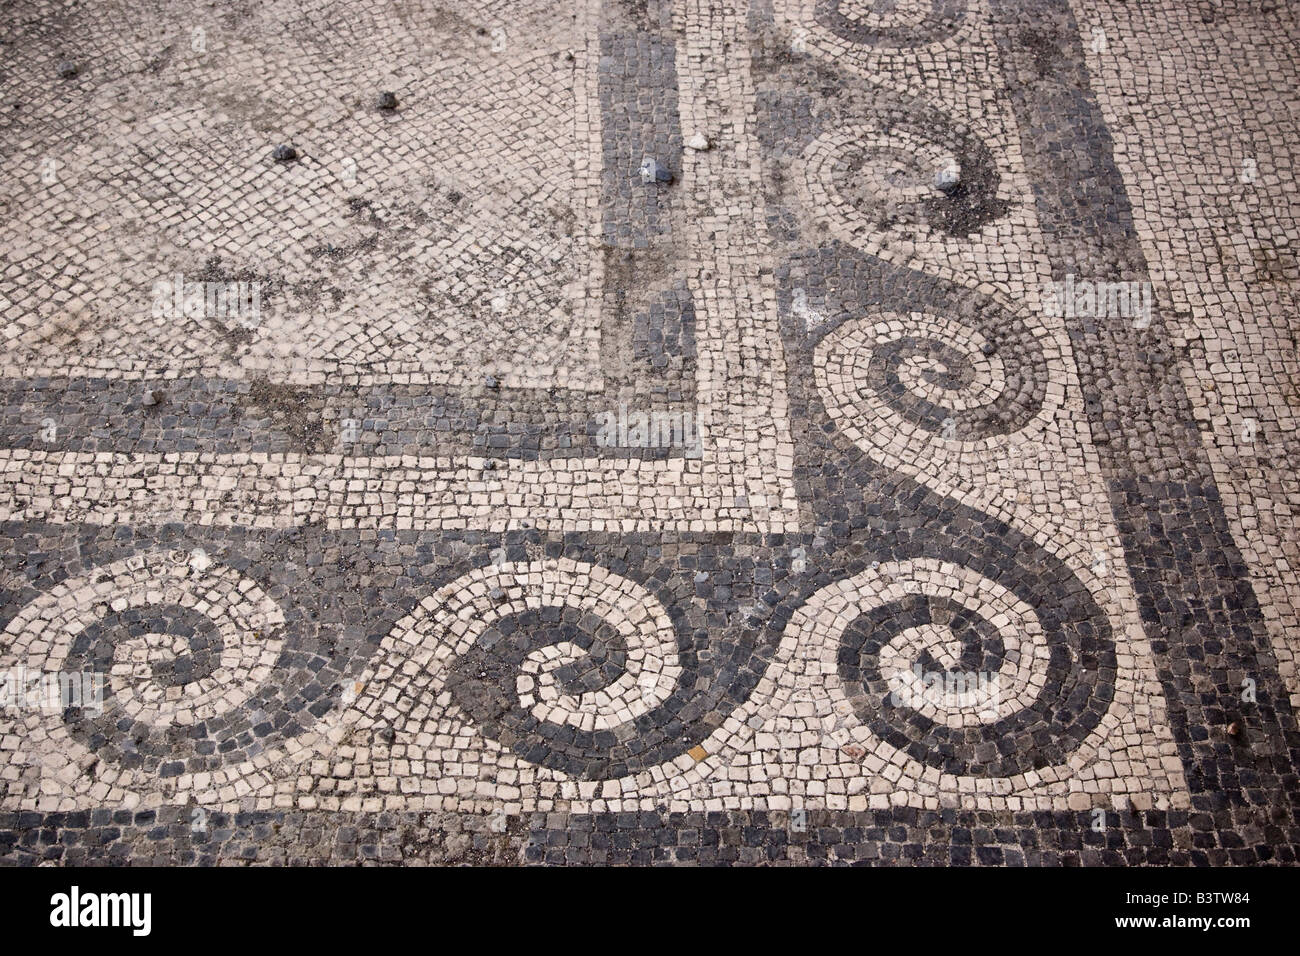 Mosaic floor patterns in the House of the Faun. Europe  Italy  Campania  Pompeii  Mosaic floor patterns in the